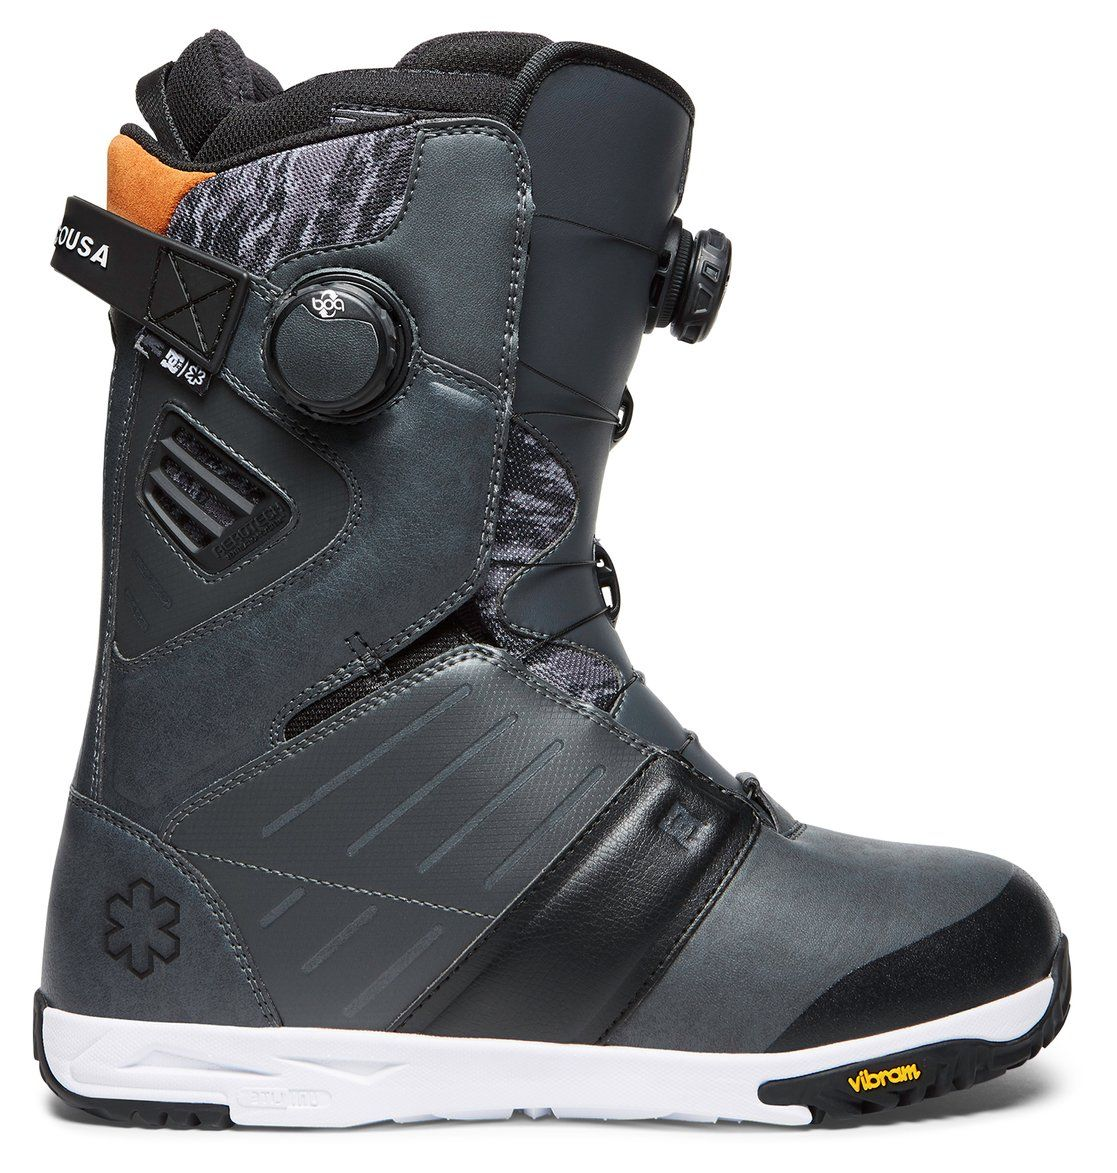 half off aa9dc 1a3fd Adidas Acerra ADV Snowboard Boot - Mens 10.0 40388  Winter Sports.  Sporting Goods  Winter sports, Sports, Snowboard